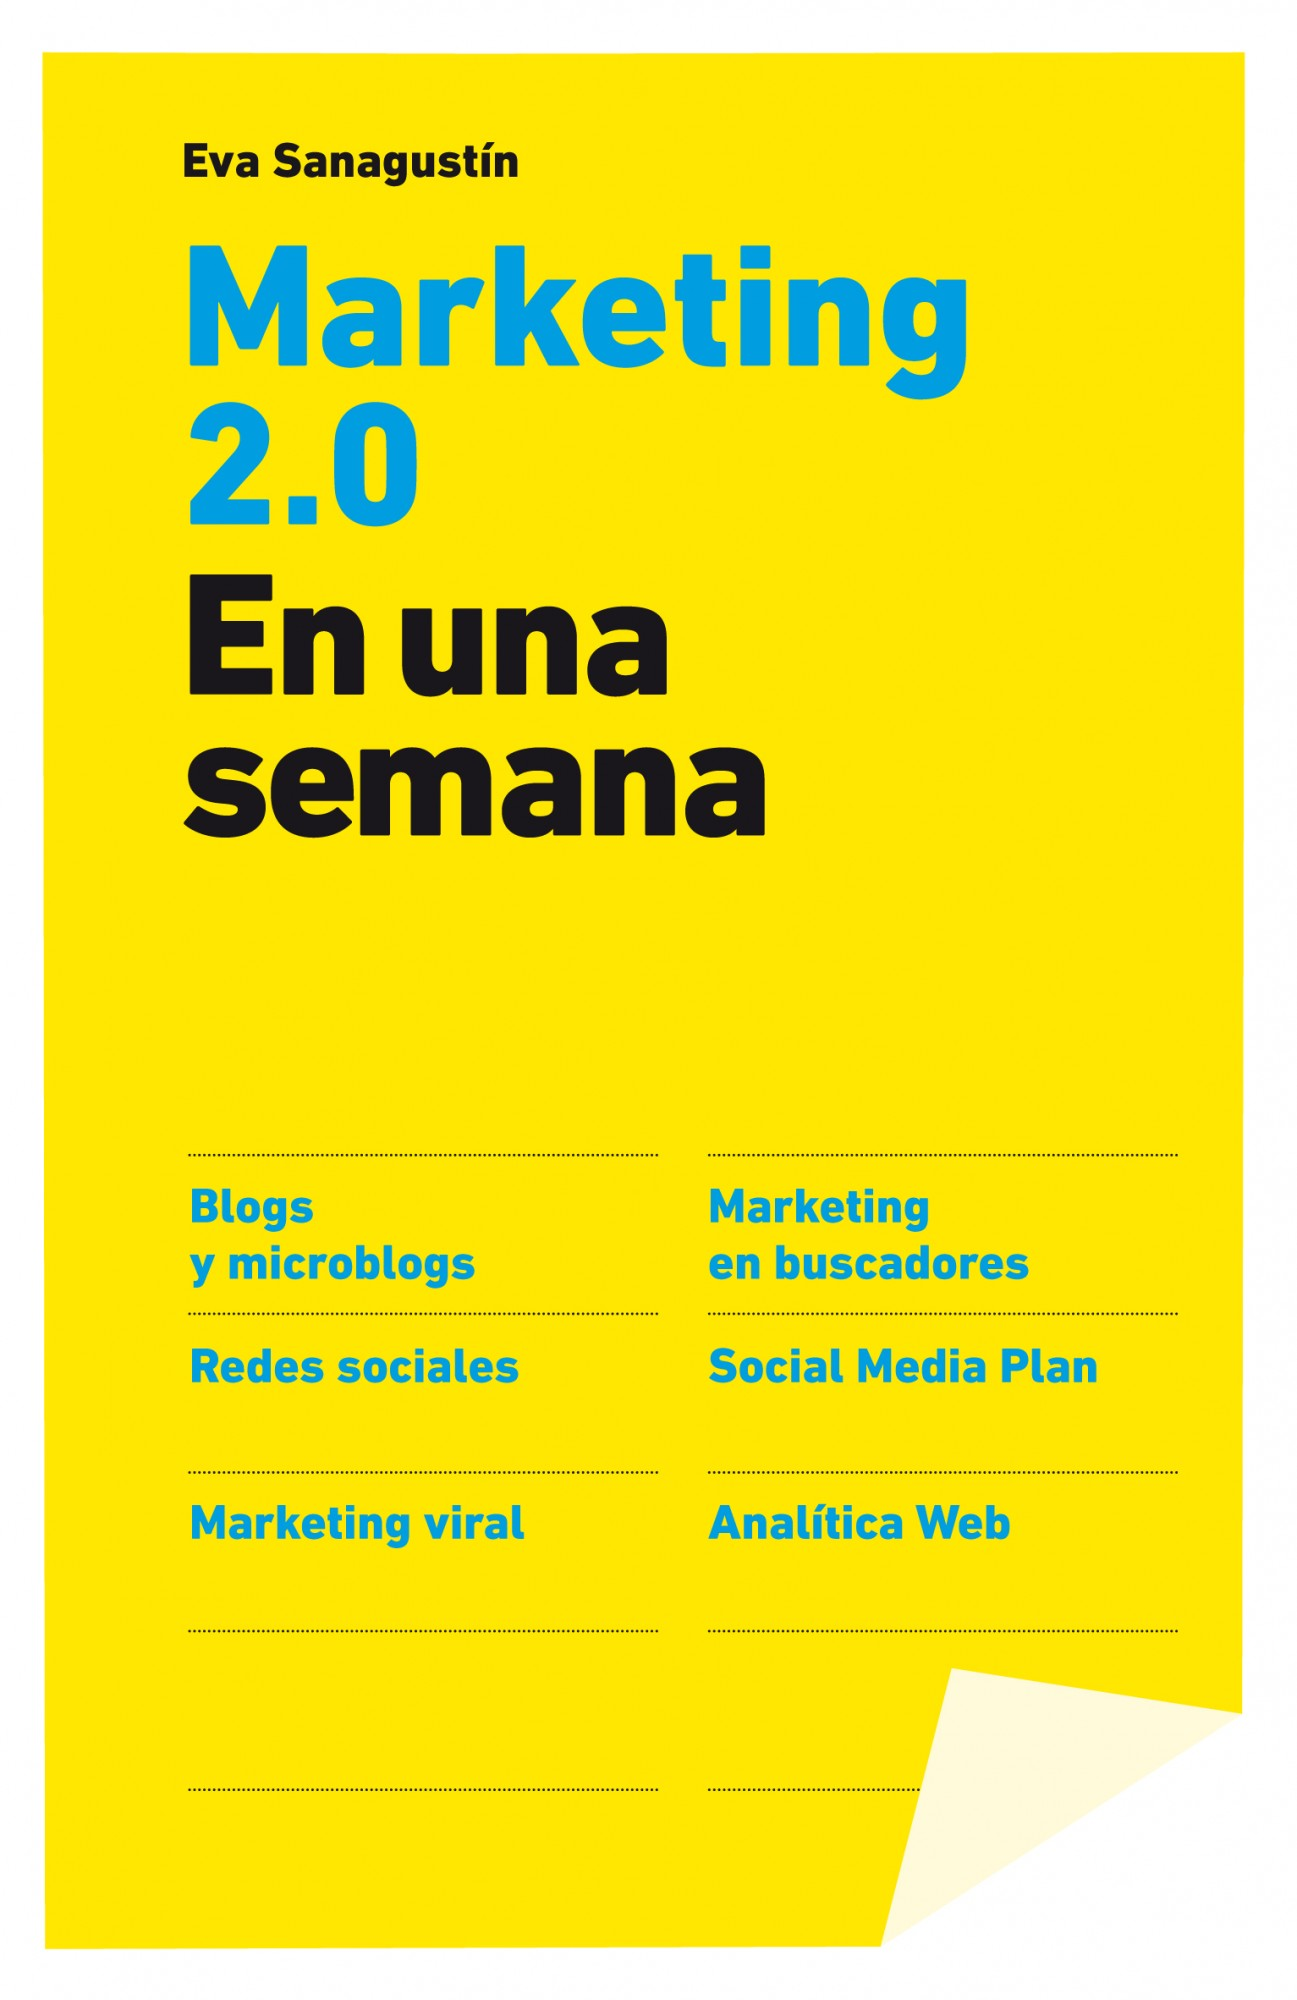 Marketing 2.0 en una semana